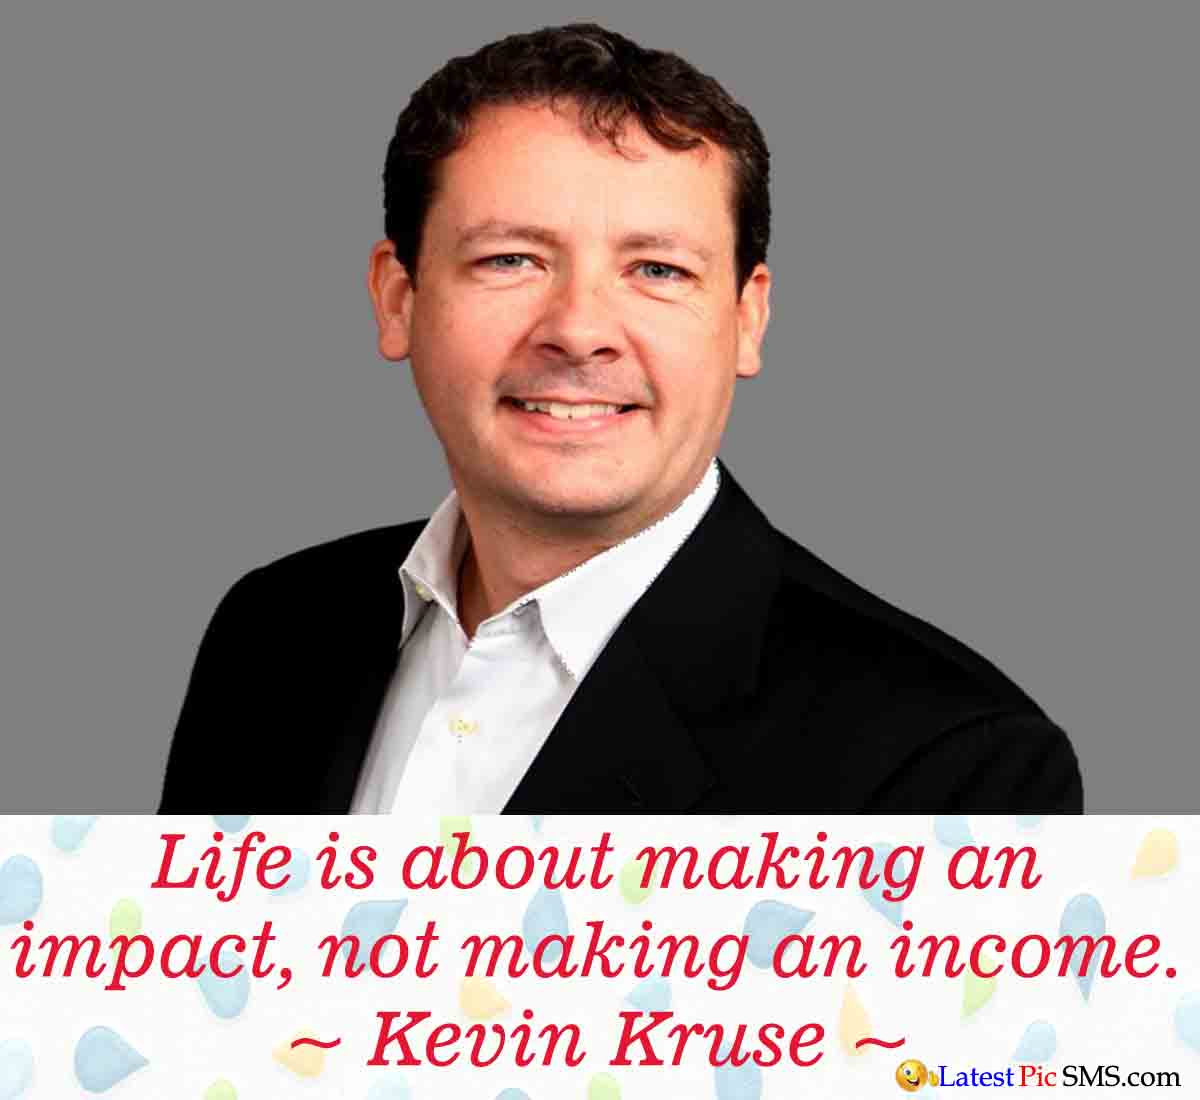 Kevin Kruse life quote - Thoughts on Life Images for Whatsapp and Facebook